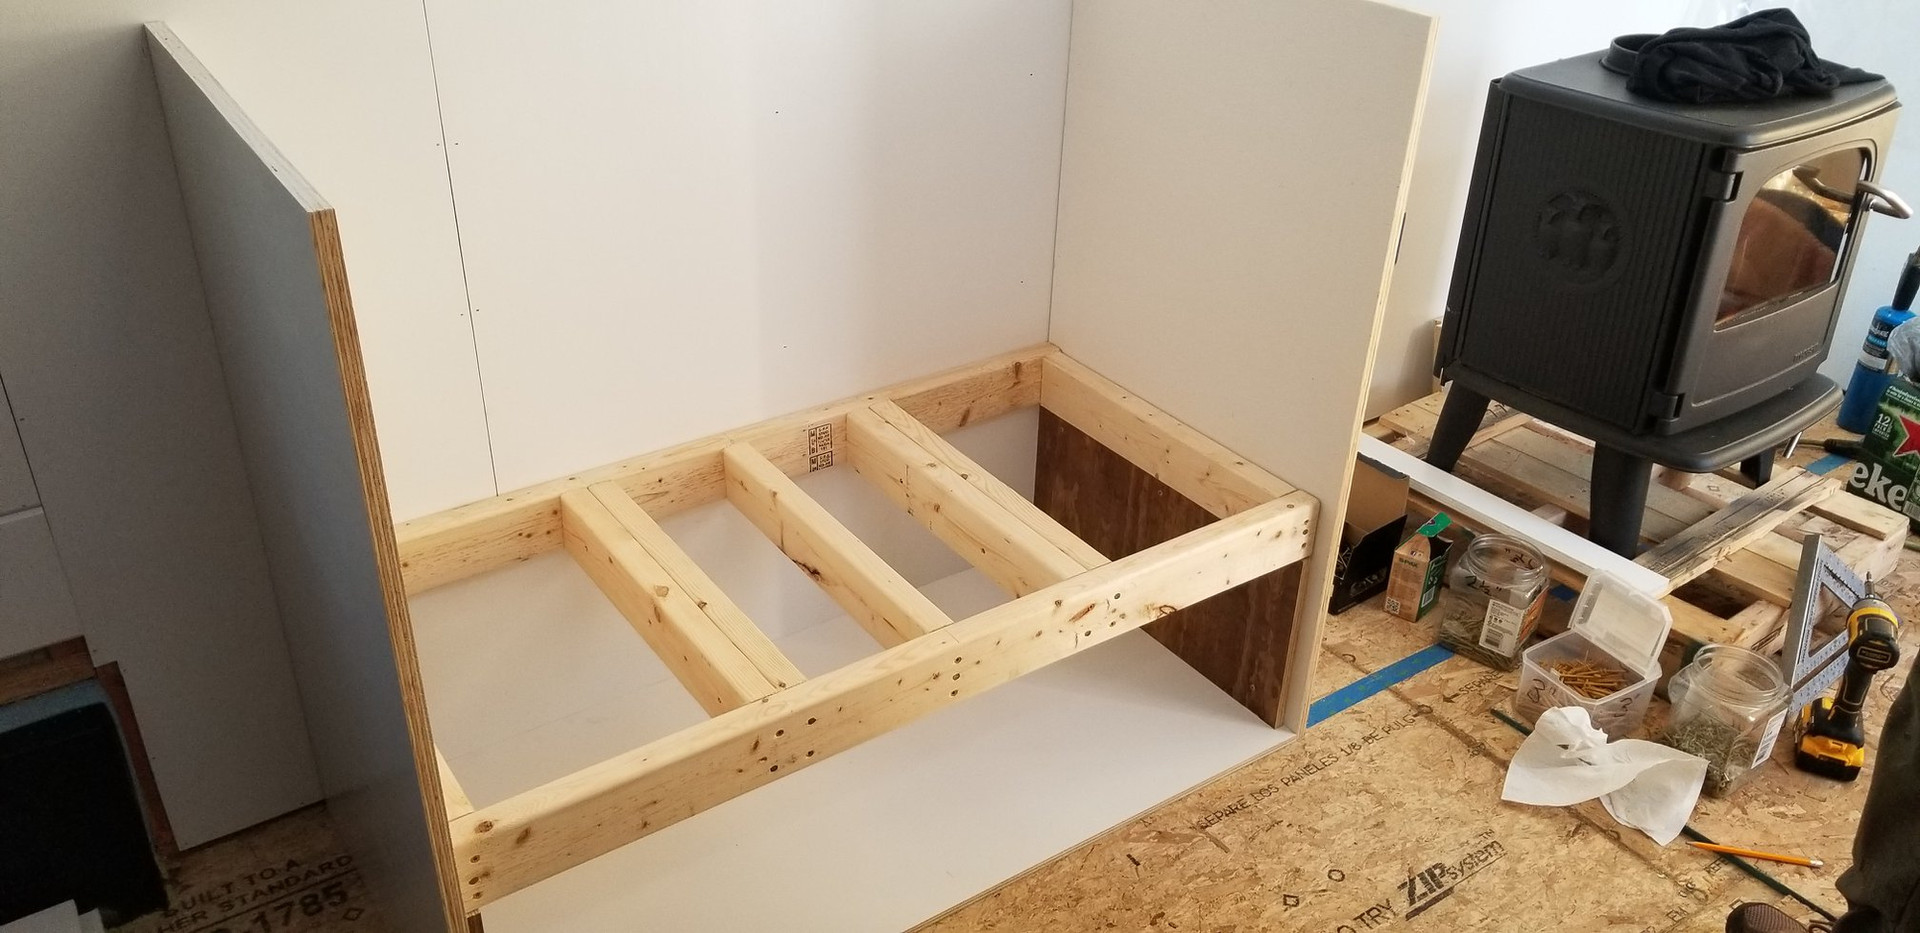 Frame to hold up wood stove